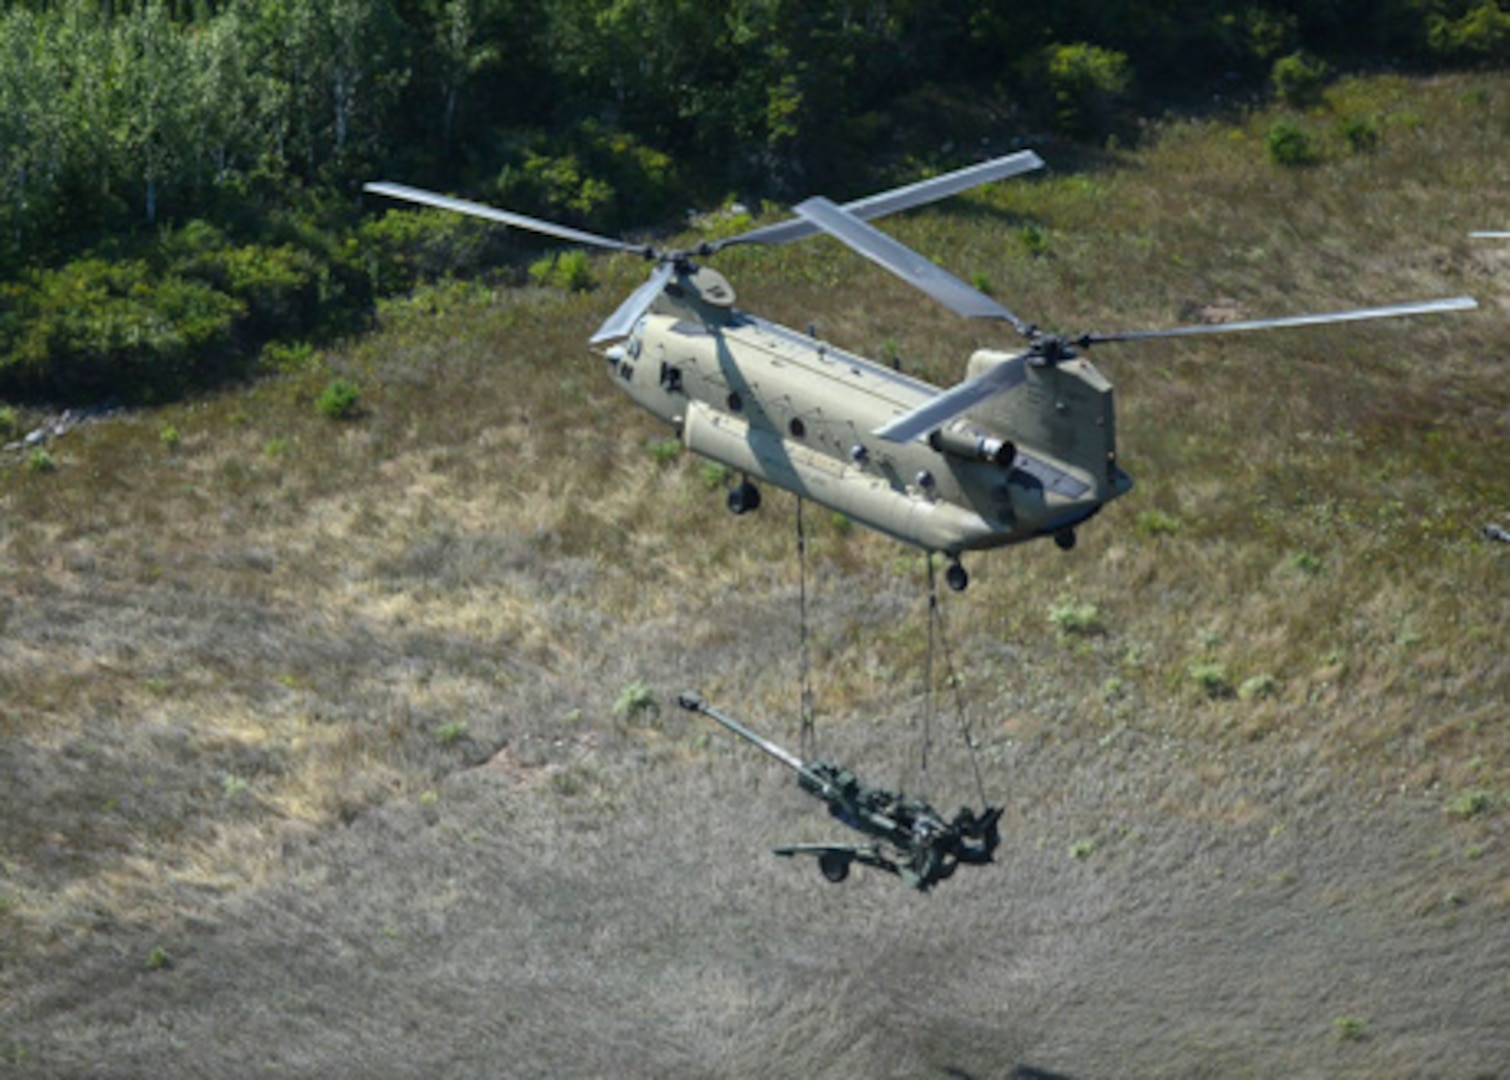 A CH-47 Chinook helicopter from 2nd General Support Aviation Battalion, 135th Aviation Regiment, Colorado Army National Guard, airlifts an M777 105mm Howitzer from Camp Grayling, Michigan, to an area in the vicinity of the Combat Readiness Training Center in Alpena, Michigan, Aug. 10, 2018.